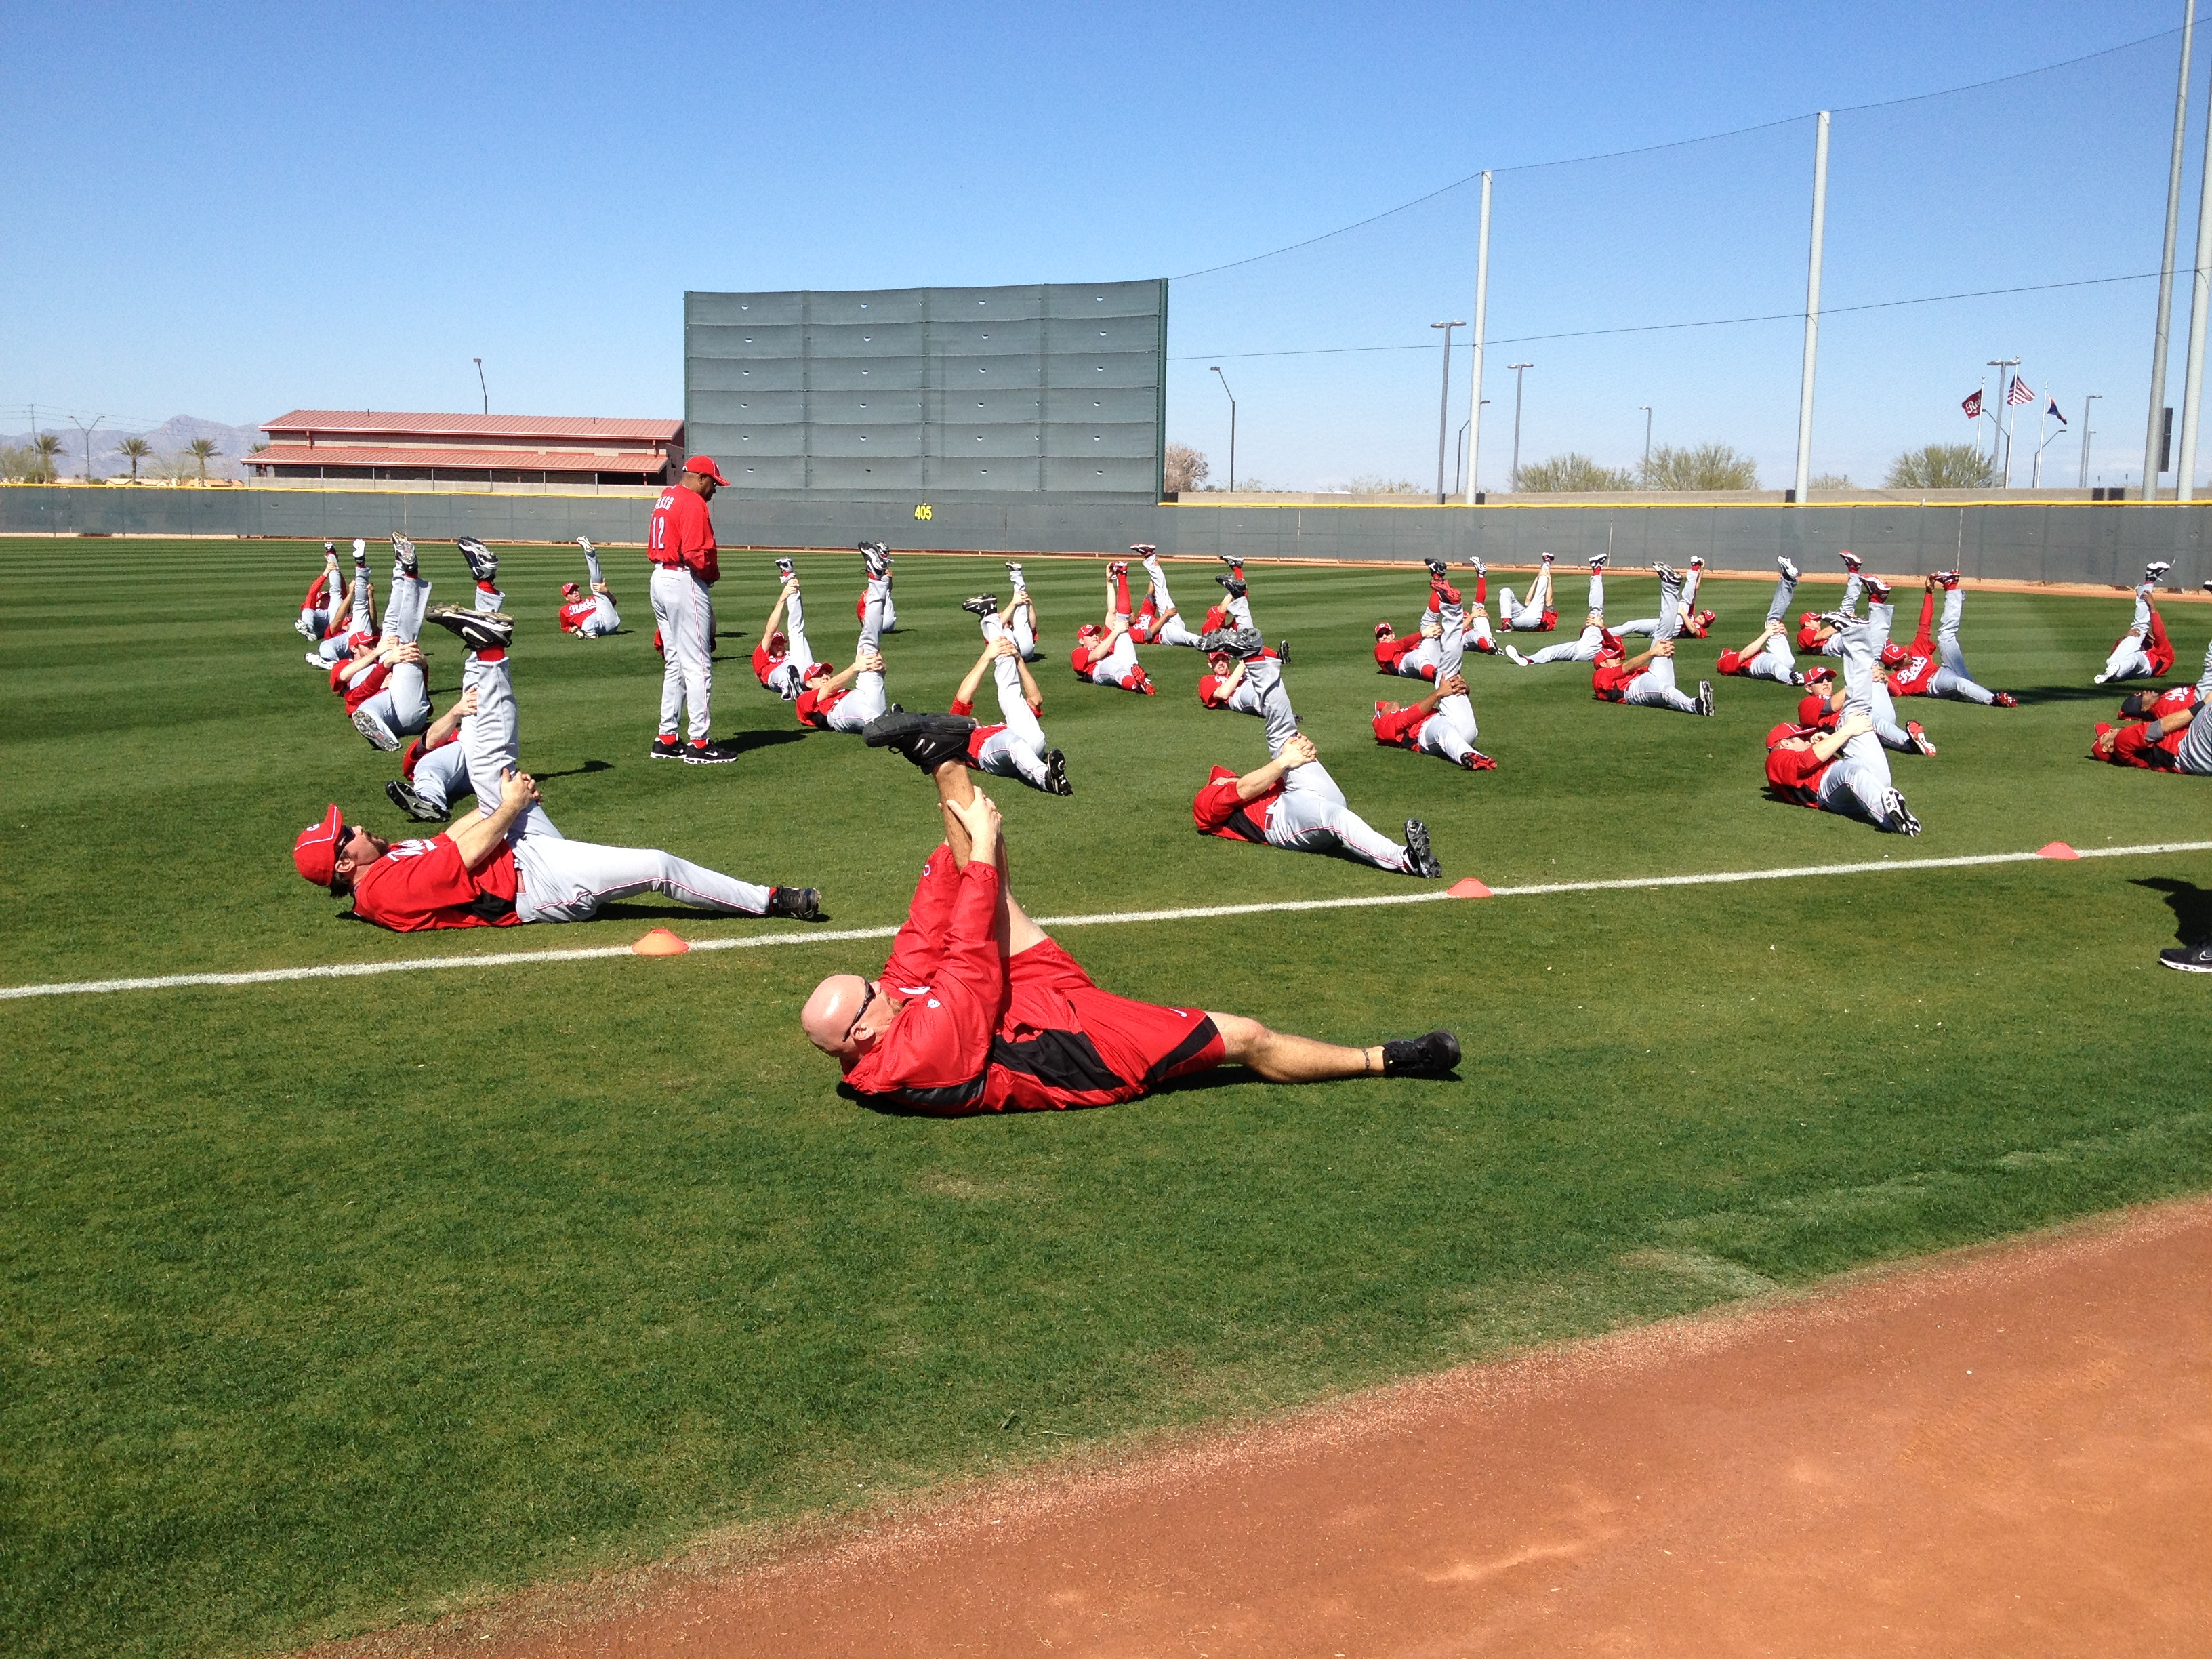 Photo of a baseball team stretching during spring training